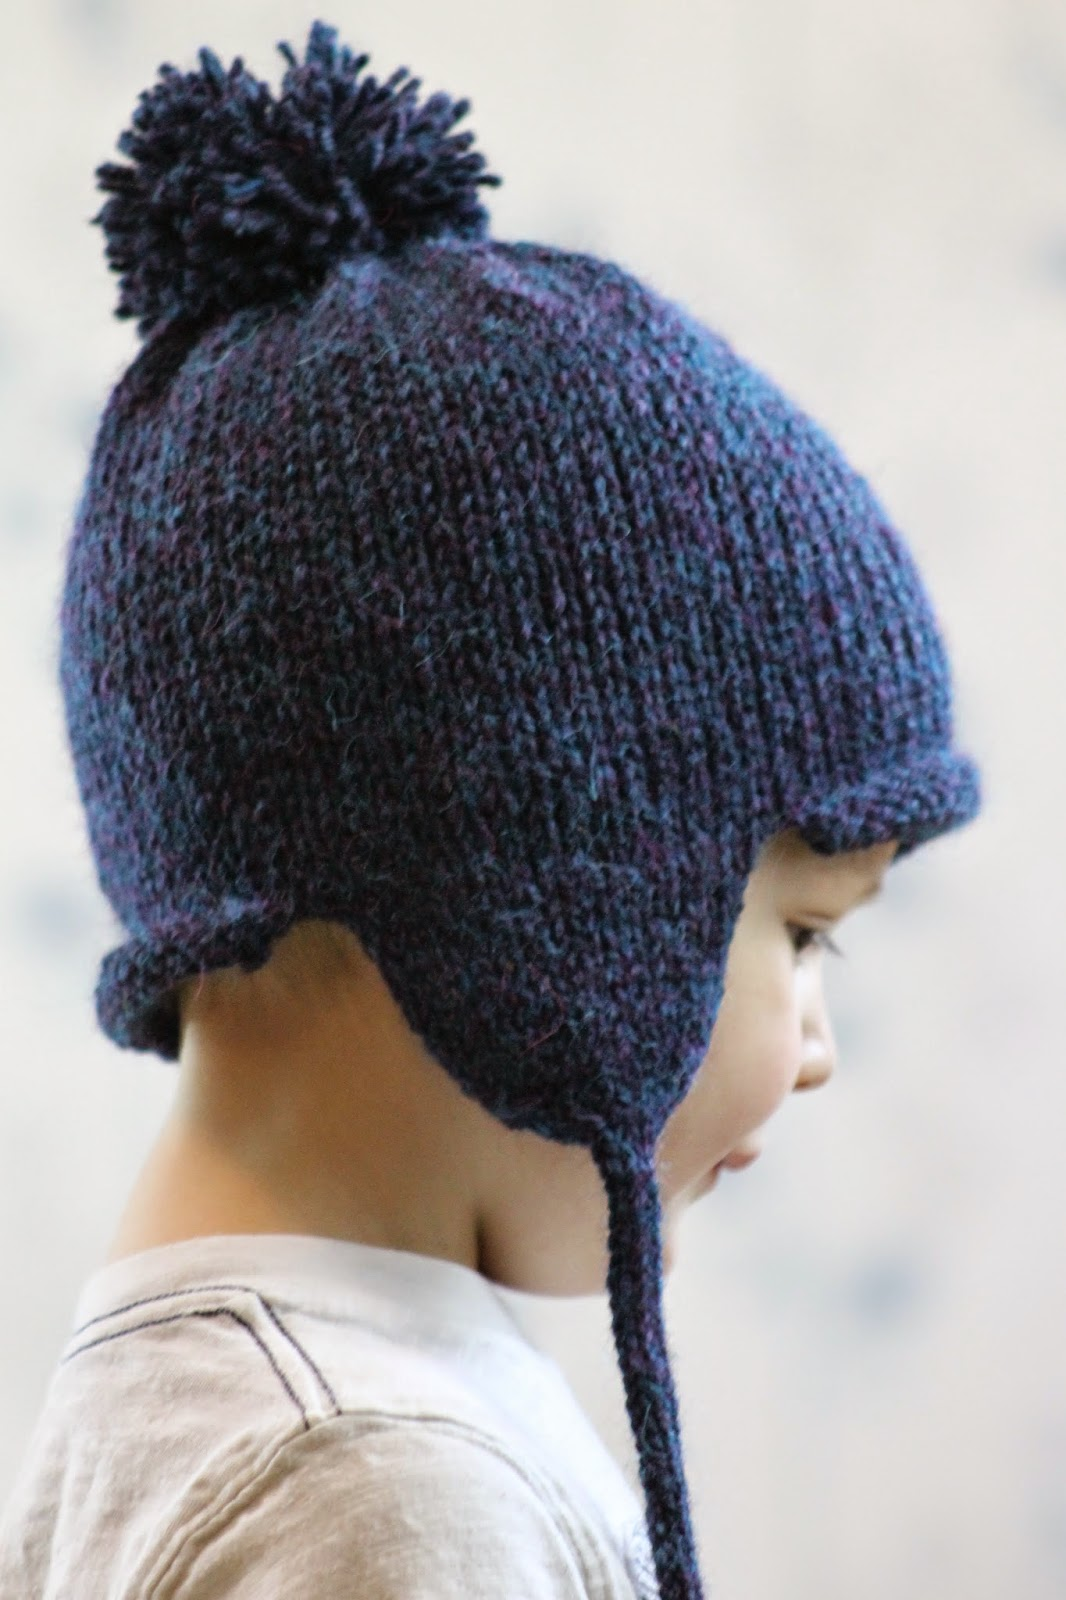 Knitting Pattern For Infant Hat With Ear Flaps : Balls to the Walls Knits: All in the Family Earflap Hat